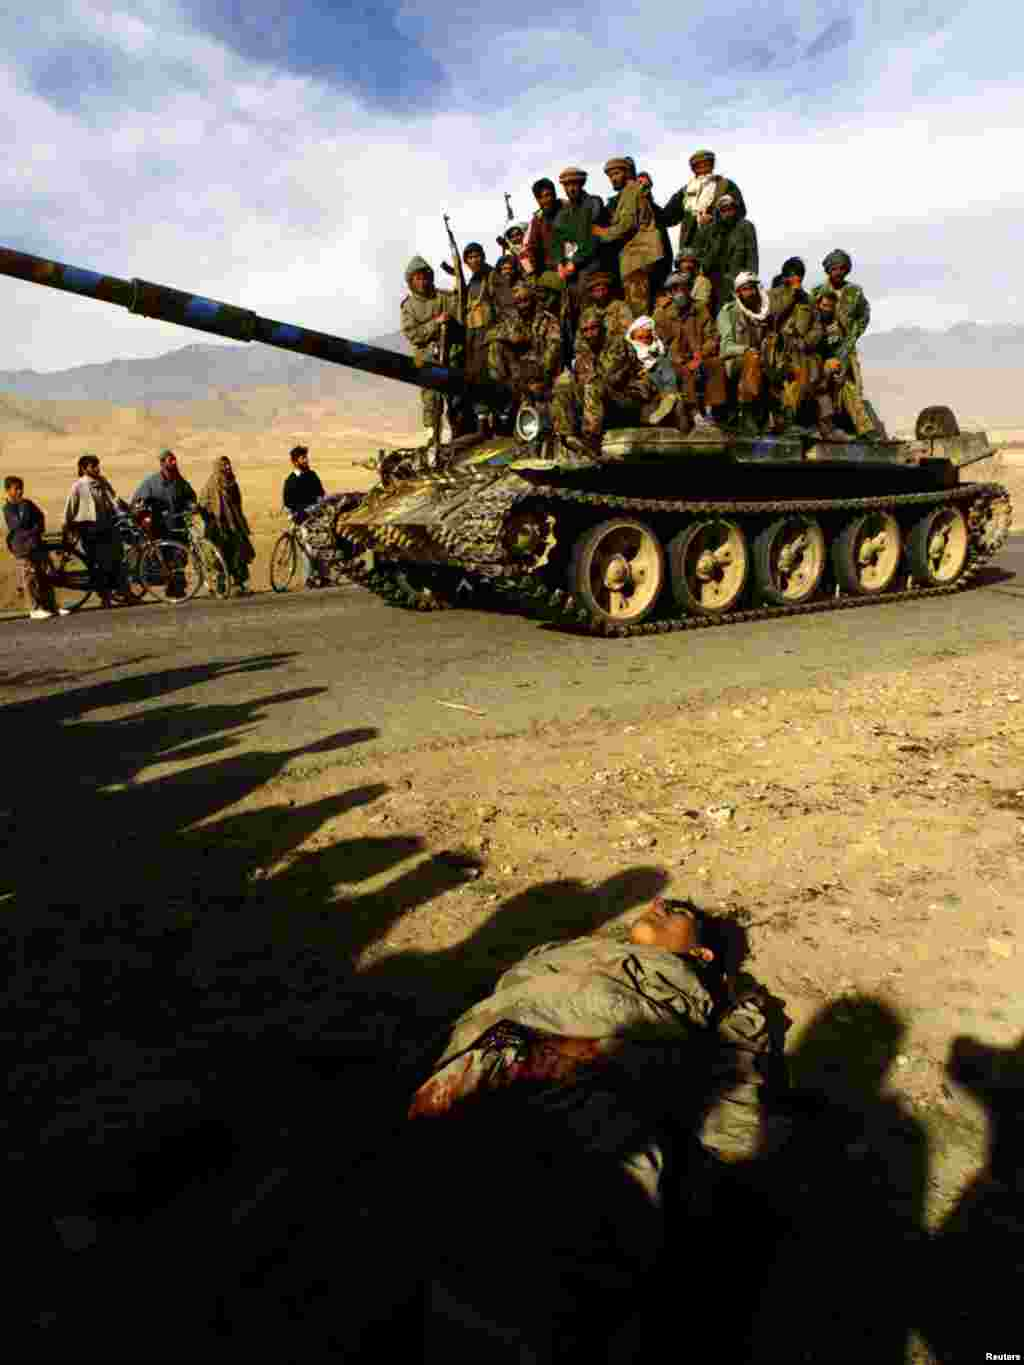 Northern Alliance fighters ride on a T-62 tank past a dead body on the motorway 3 km north of Kabul, as Northern Alliance fighters approached the Afghan capital, November 13, 2001. Forces of the anti-Taliban Northern Alliance entered Kabul on Tuesday after Taliban forces fled the capital, and were greeted by civilians. REUTERS